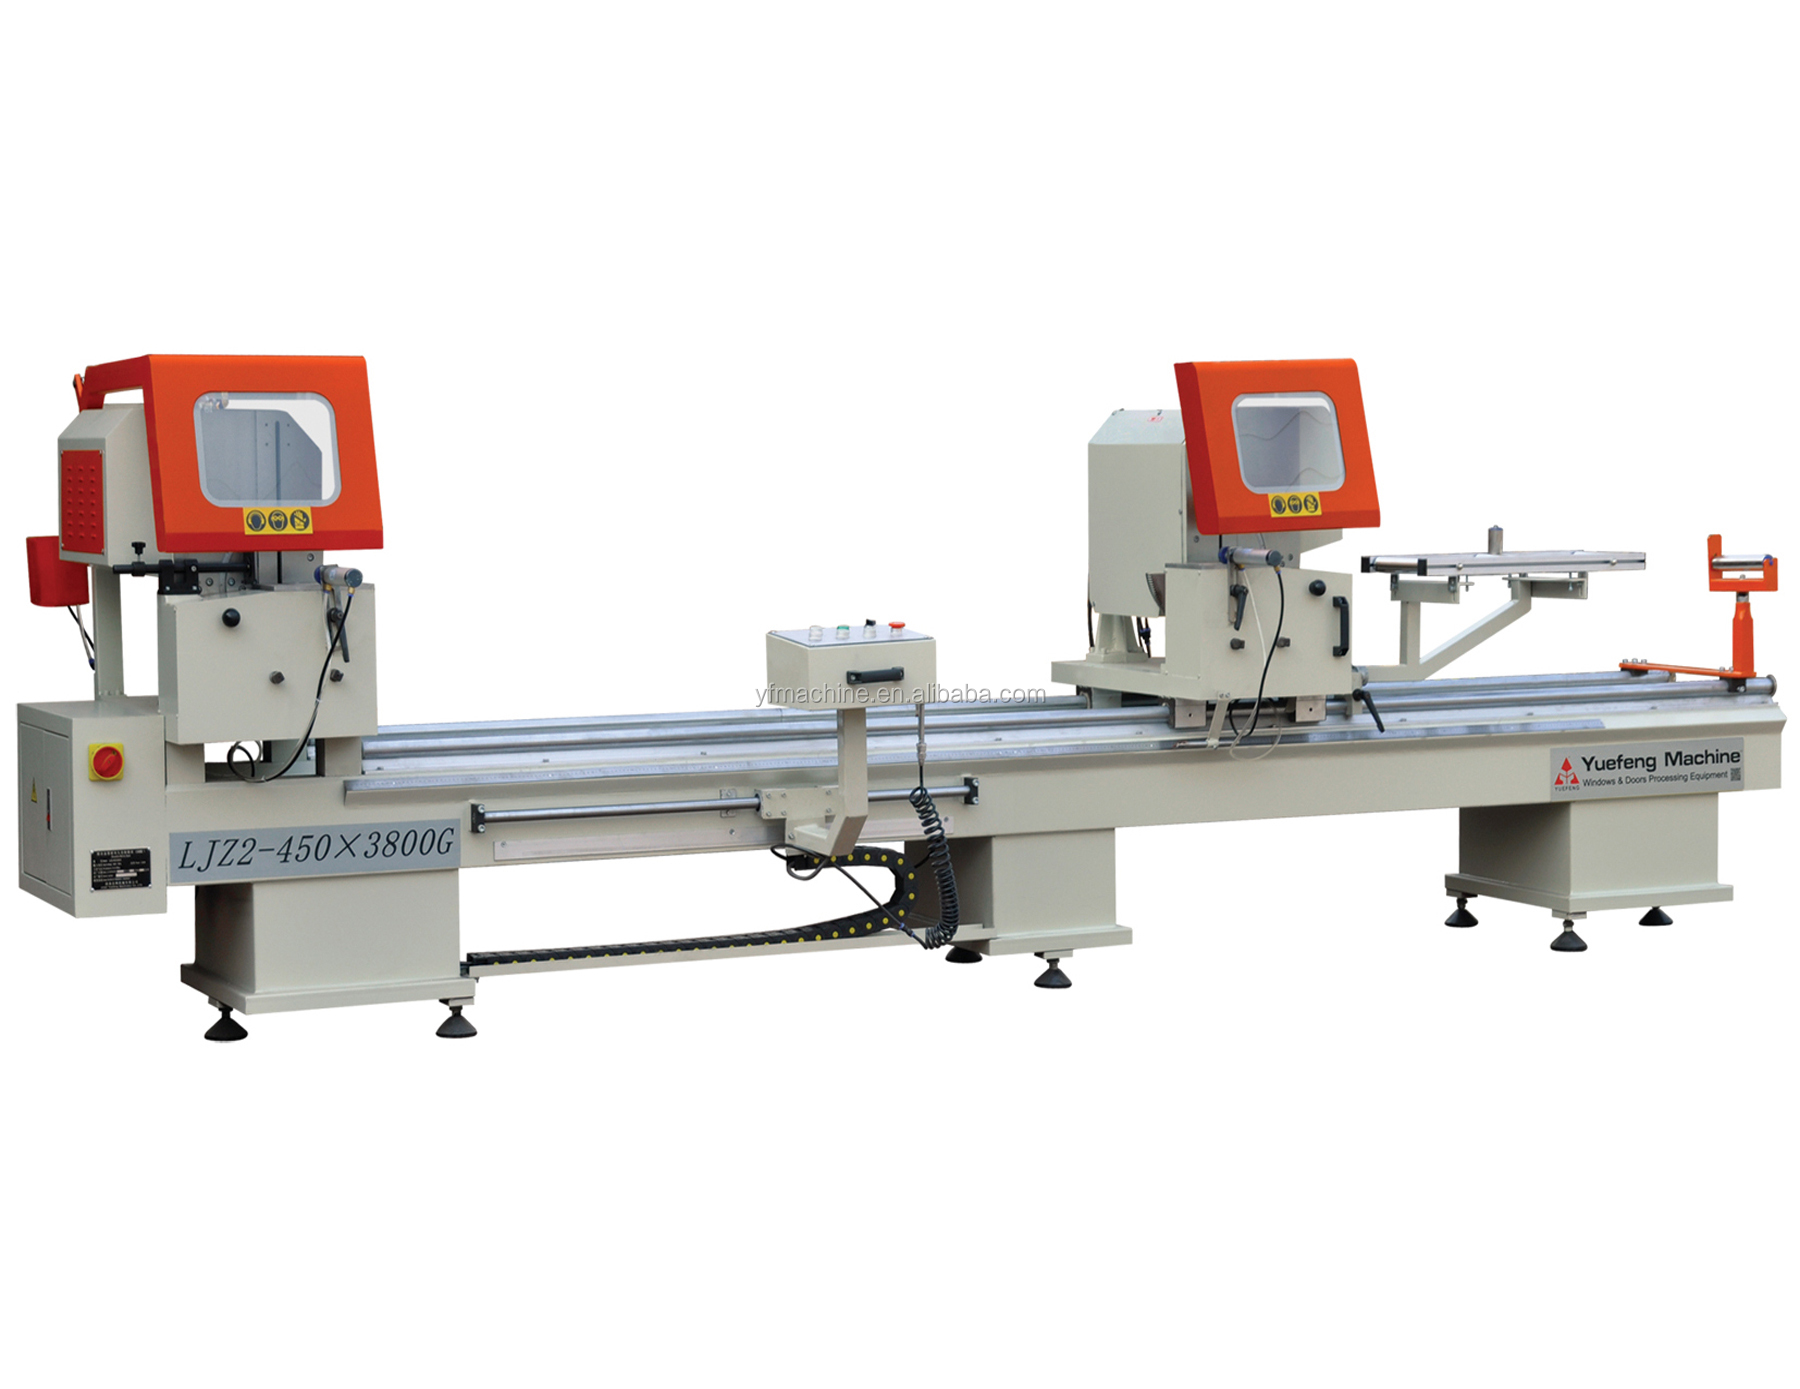 Jinan Aluminum Window Profiles Cutting Machine Upvc Window Fabrication Machine